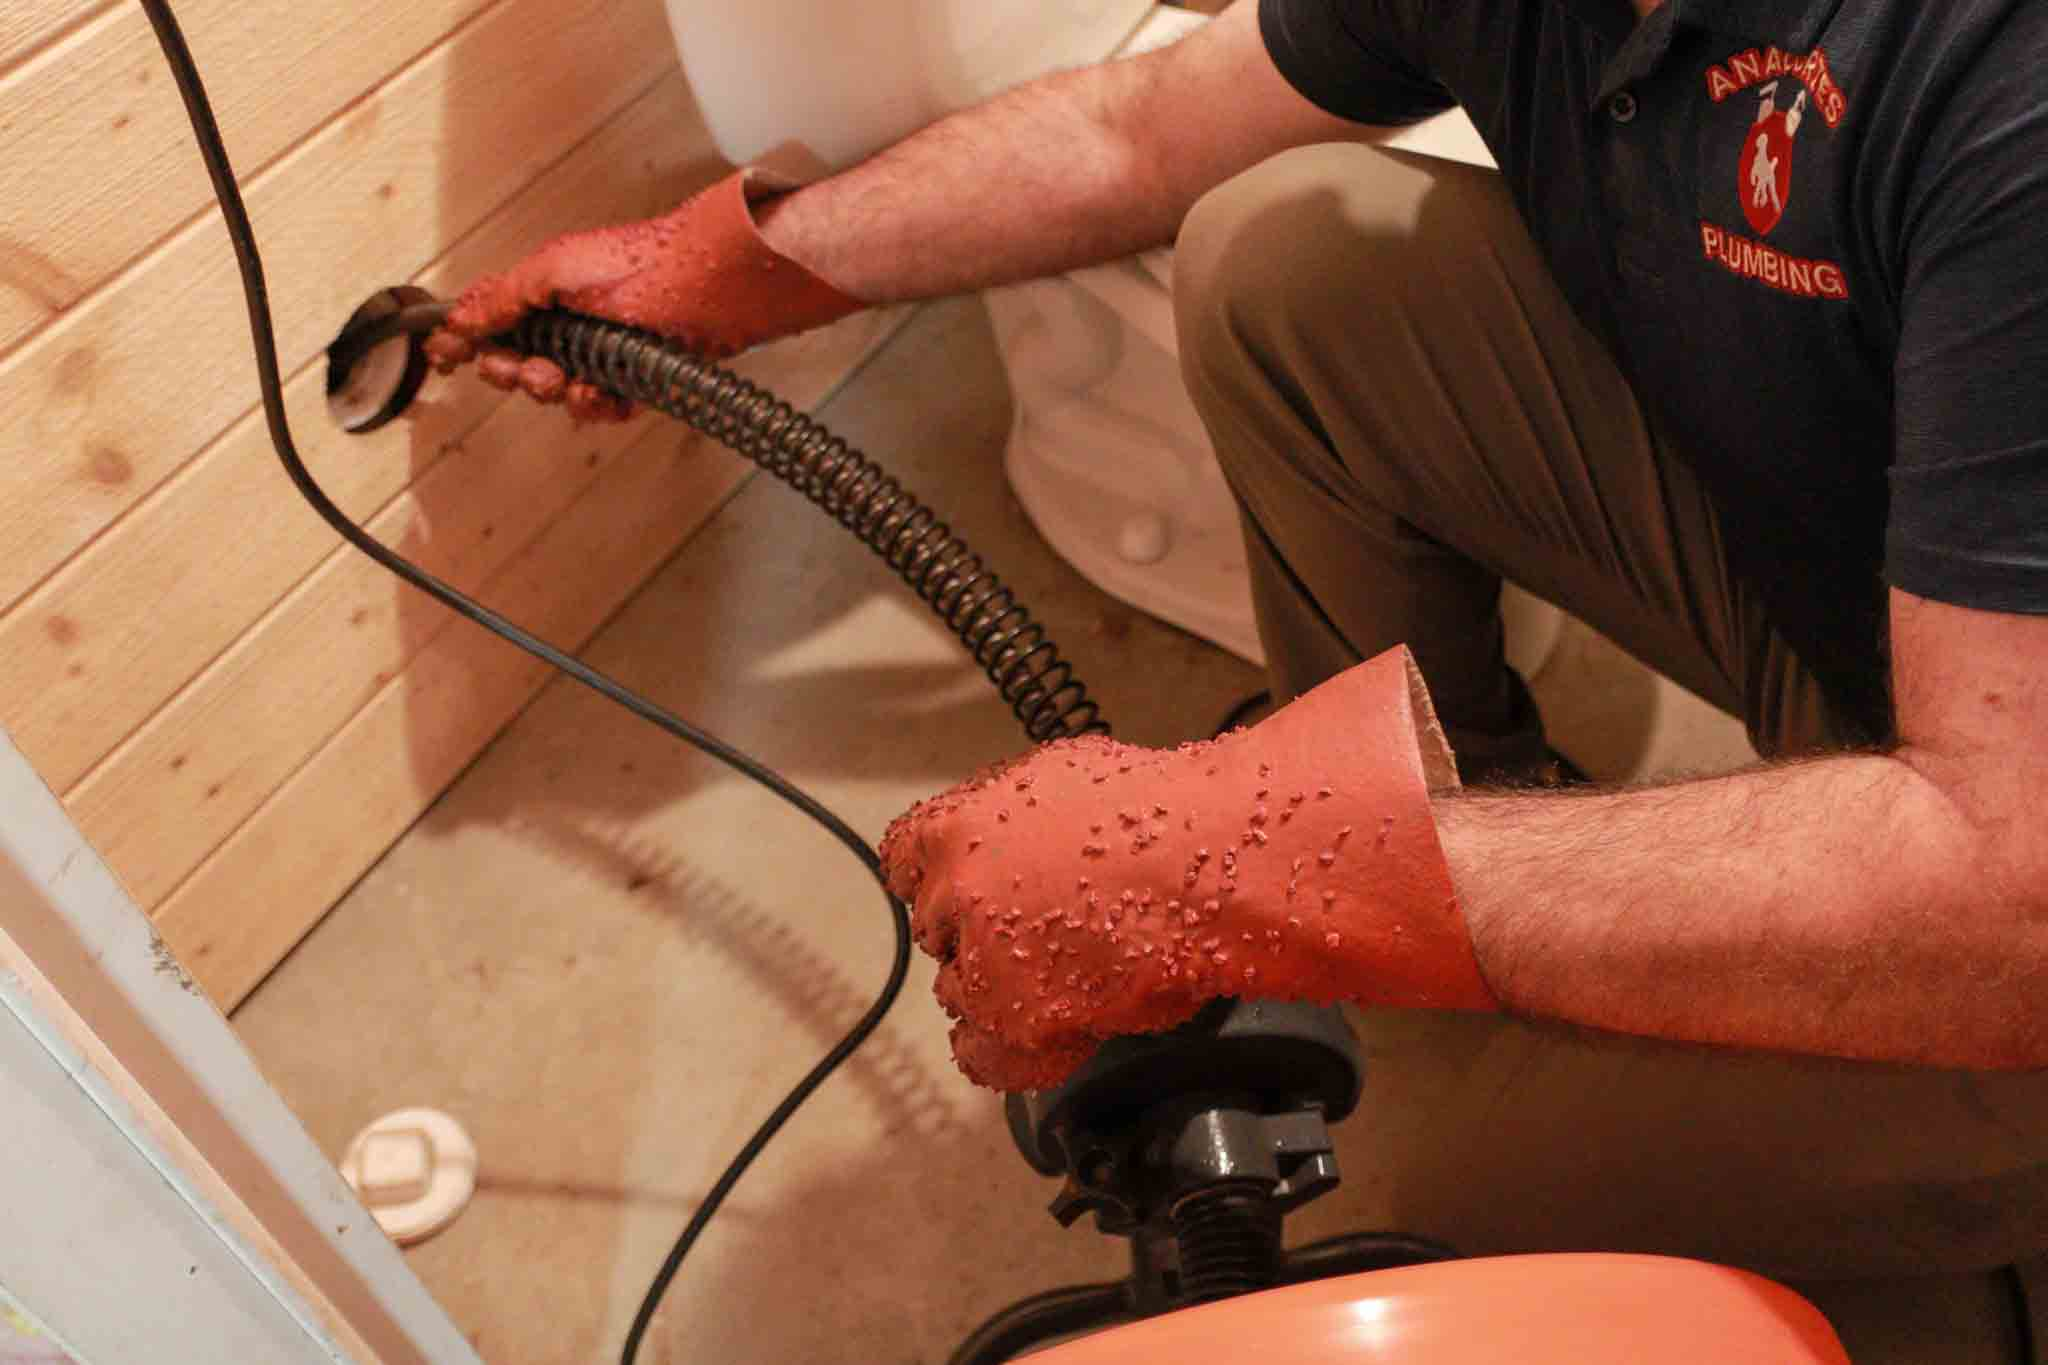 Anacortes Plumbing plumber cleaning a clogged drain.